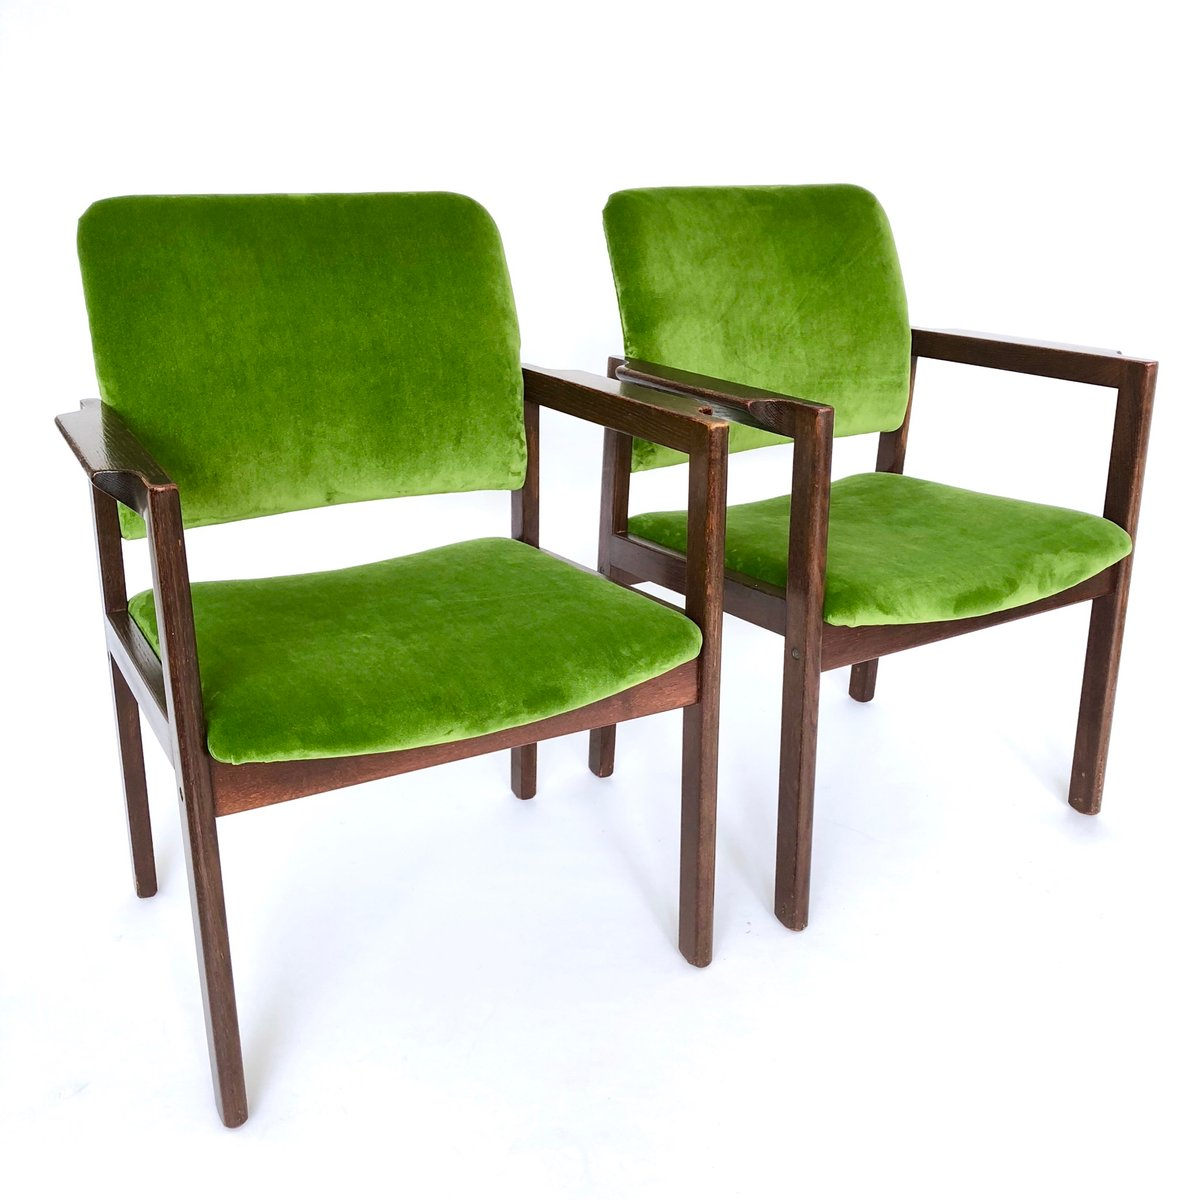 Vintage Danish Chairs From Bjerringbro Kontormøbler, Set Of 2